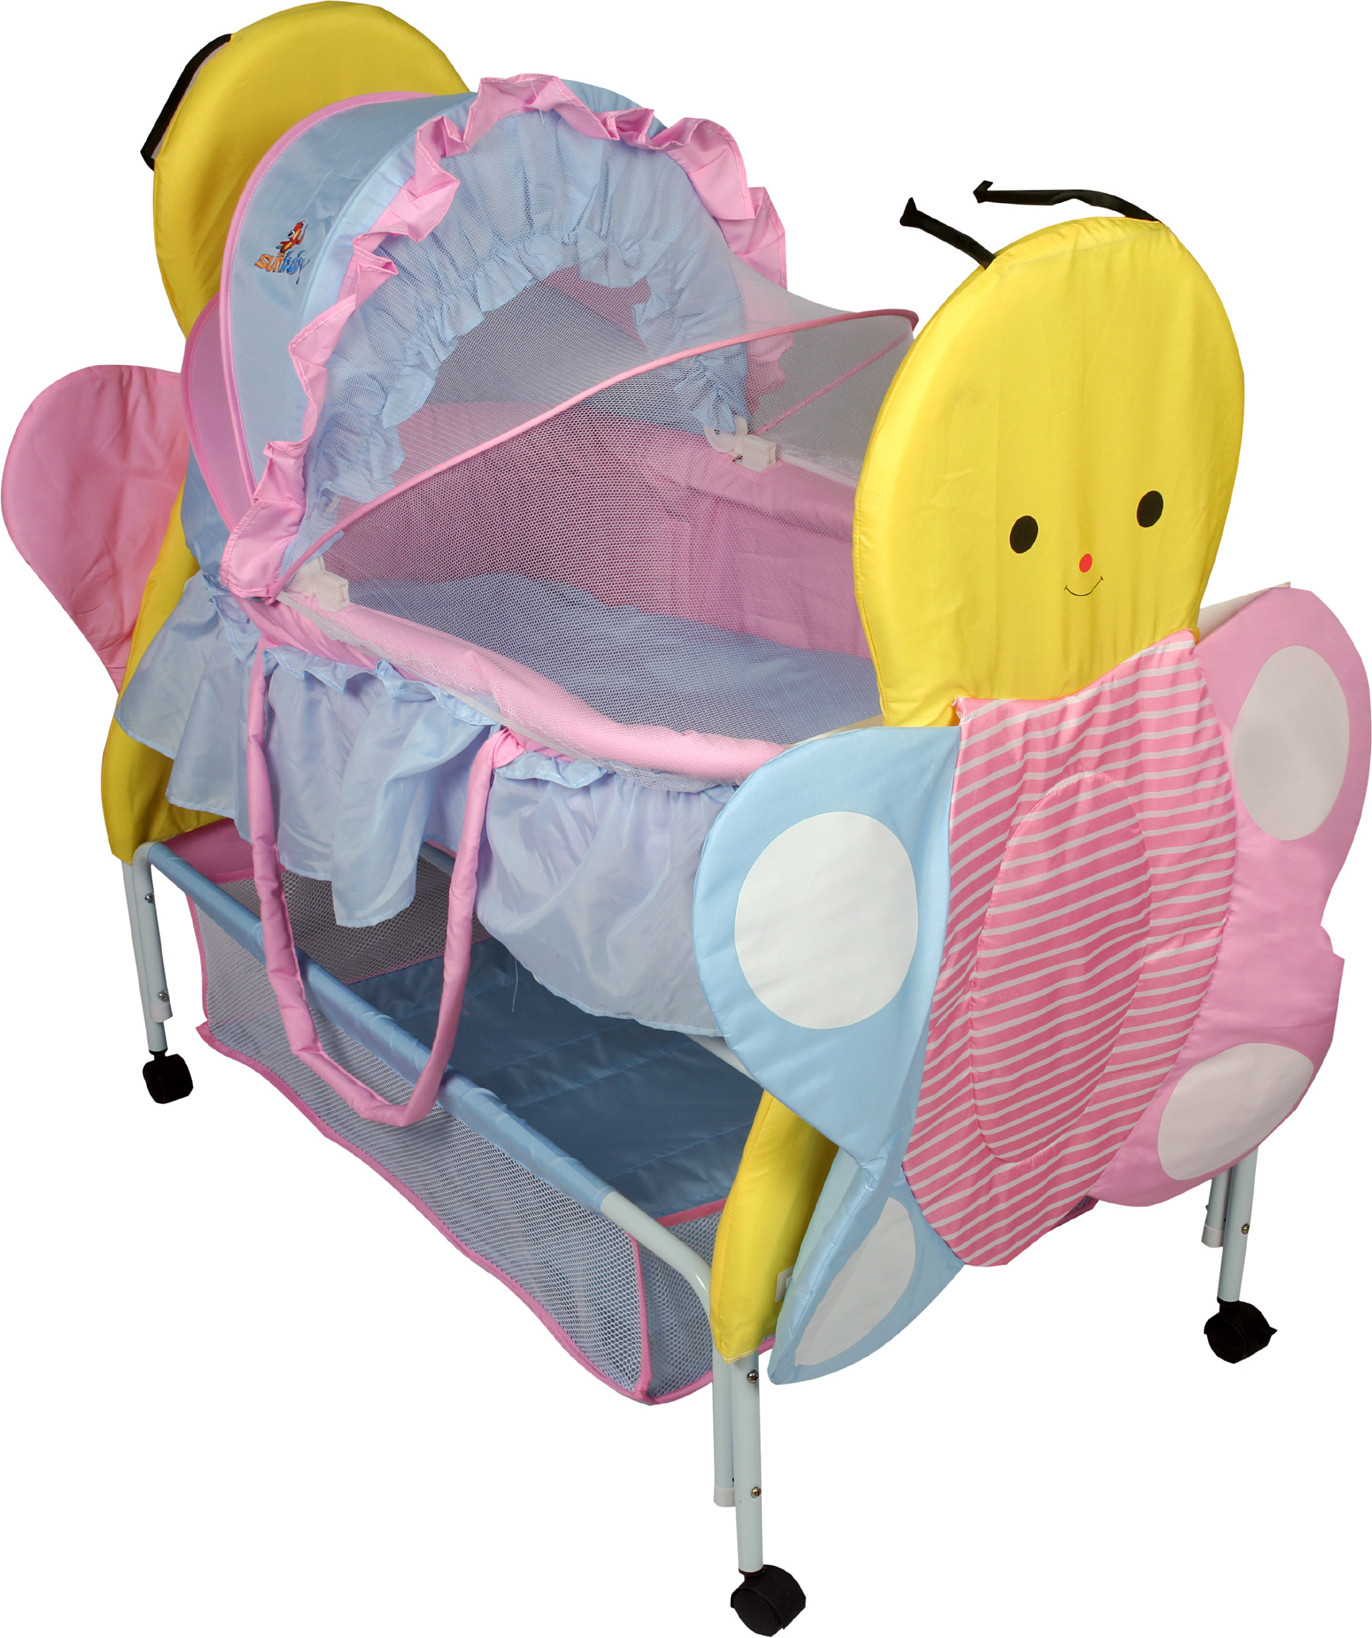 Baby bed online flipkart - Sunbaby Buzz The Butterfly Bassinet Pink